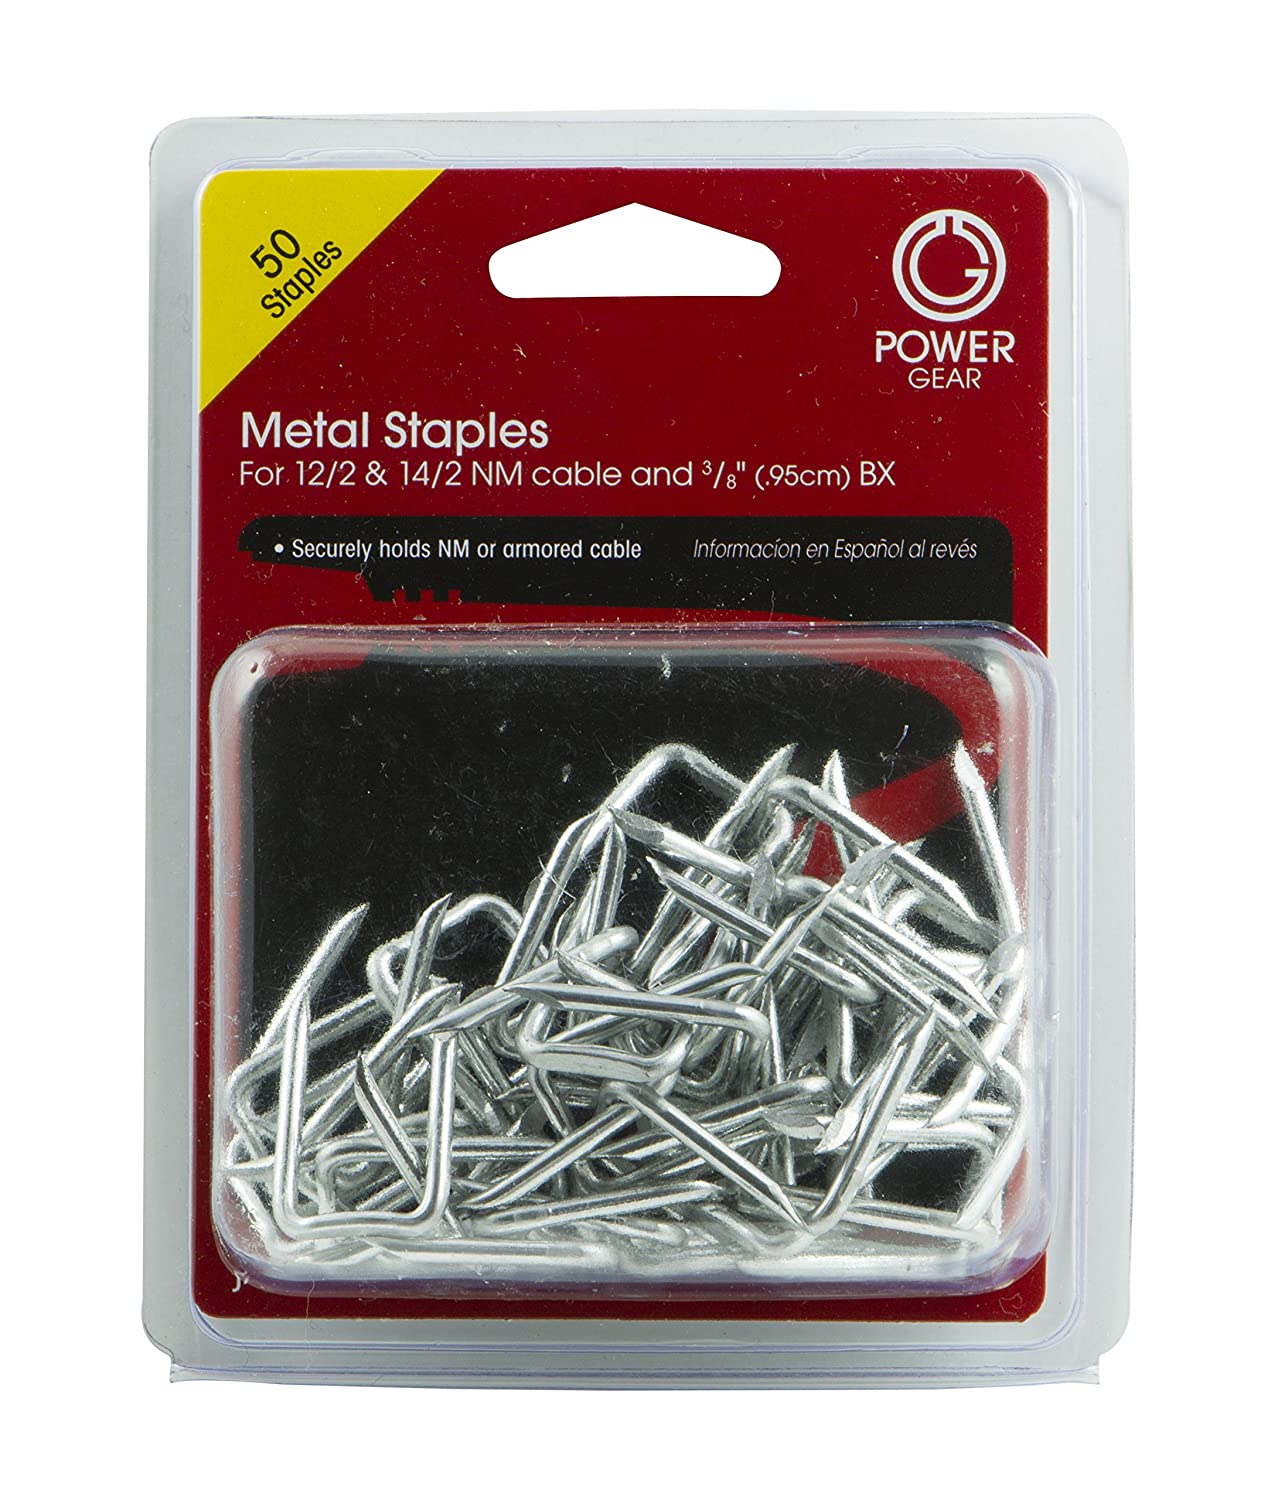 Power Gear Steel Staples (Pack of 50), 52127 - Electrical Cable Staples - Amazon.com